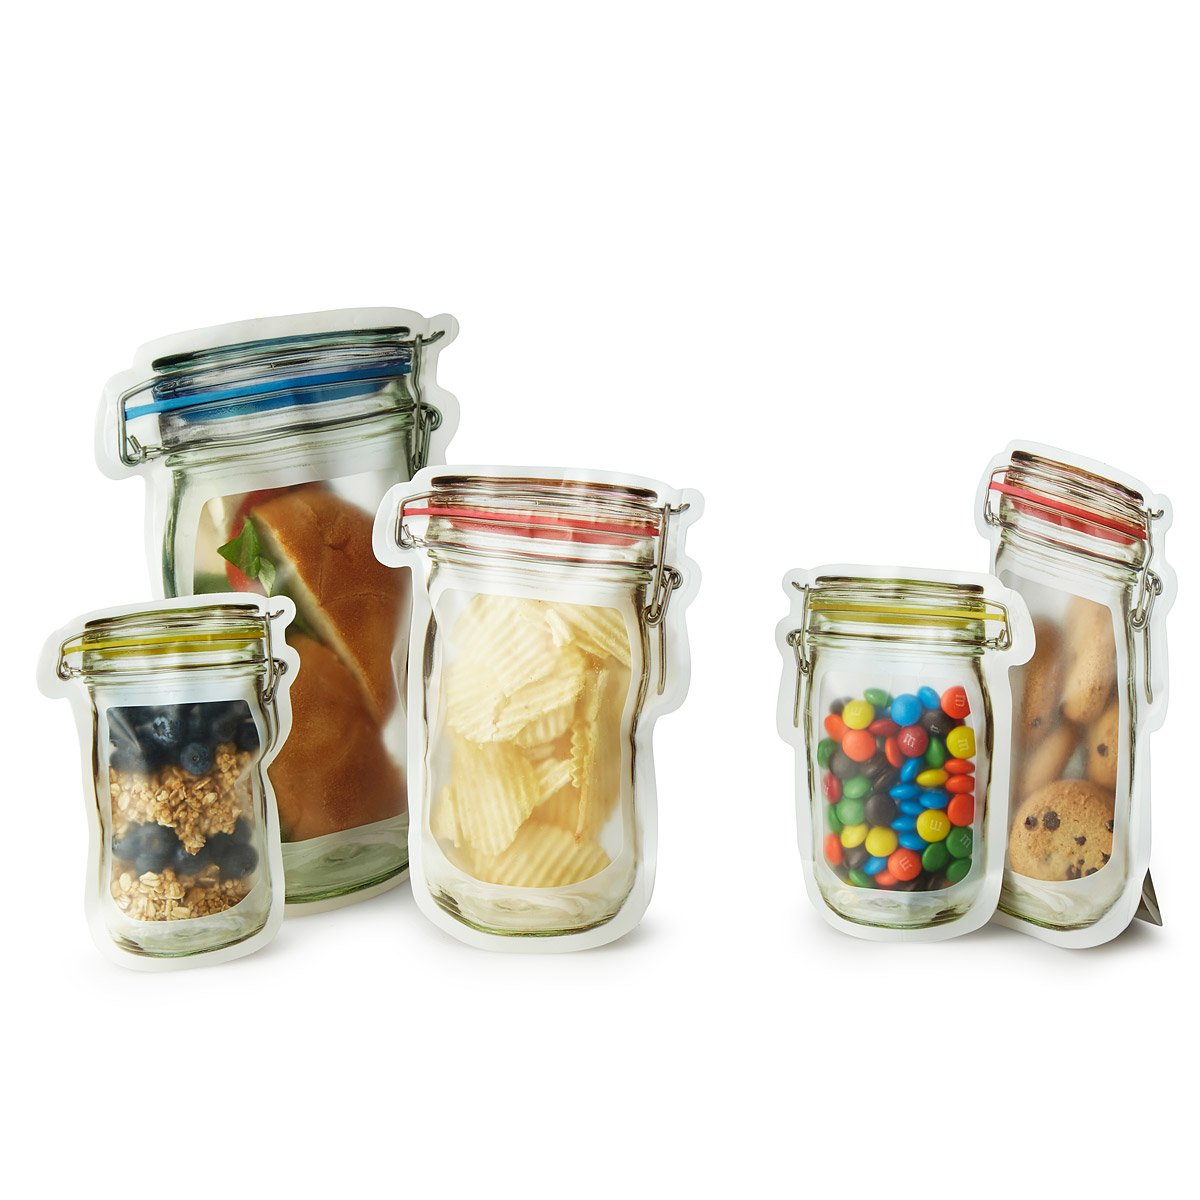 Kitchen Storage Containers kitchen storage jars | uncommongoods